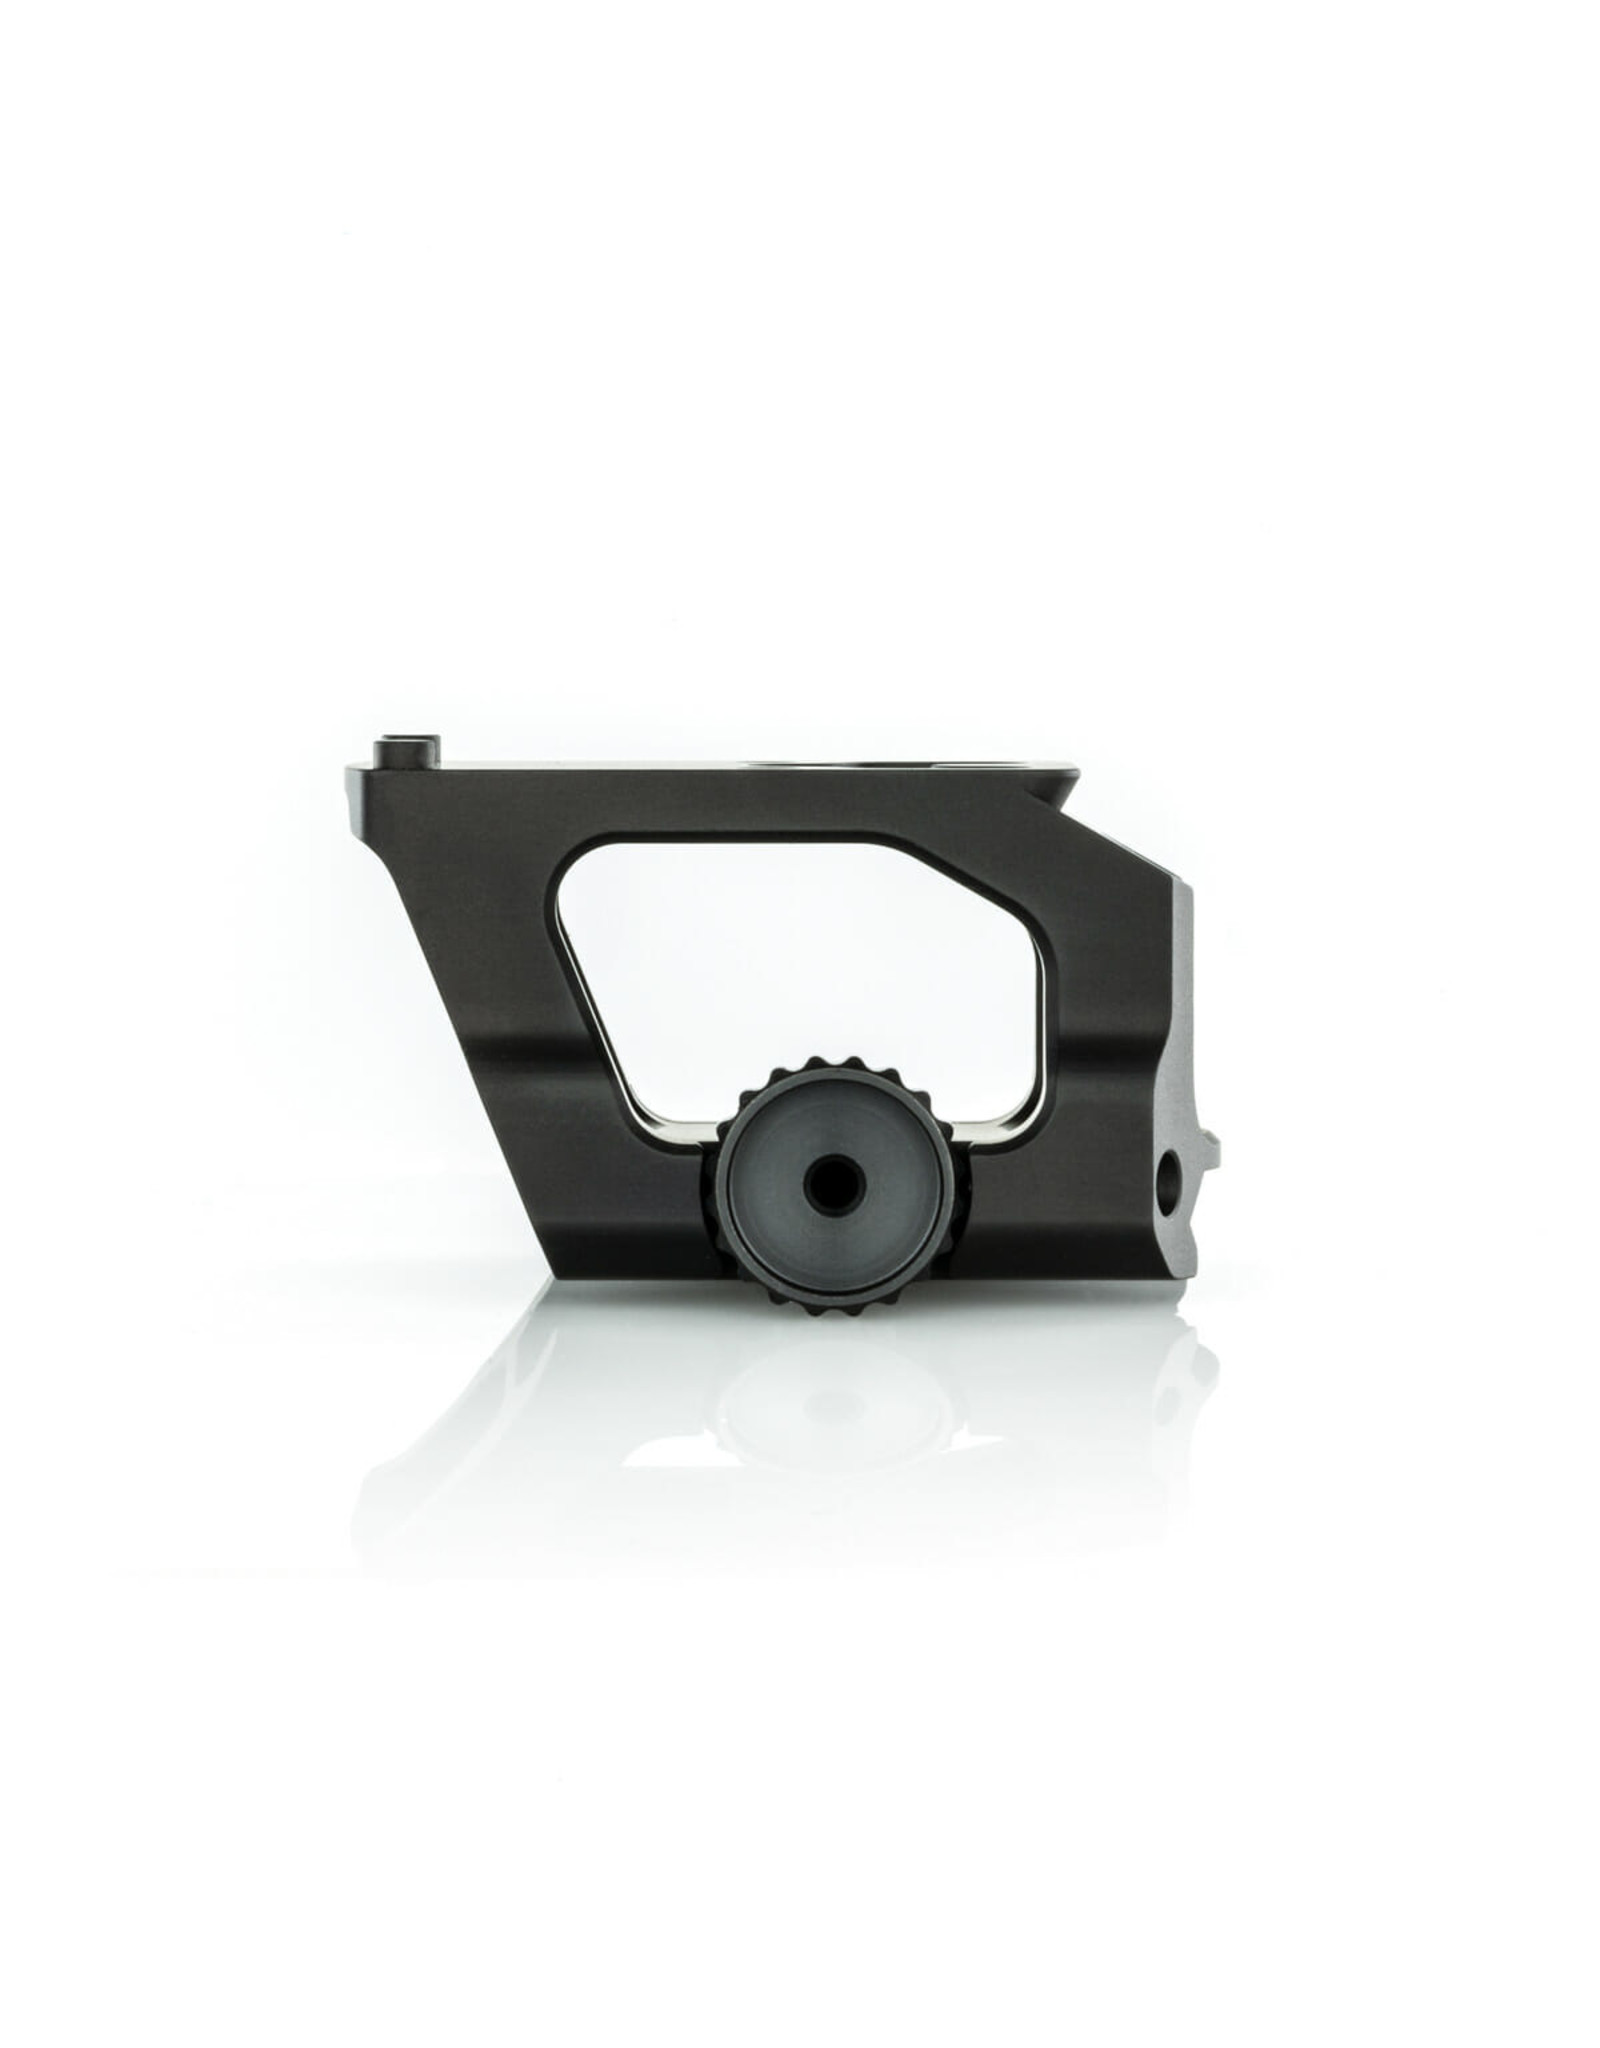 SCALARWORKS LEAP/RMR LOWER 1/3